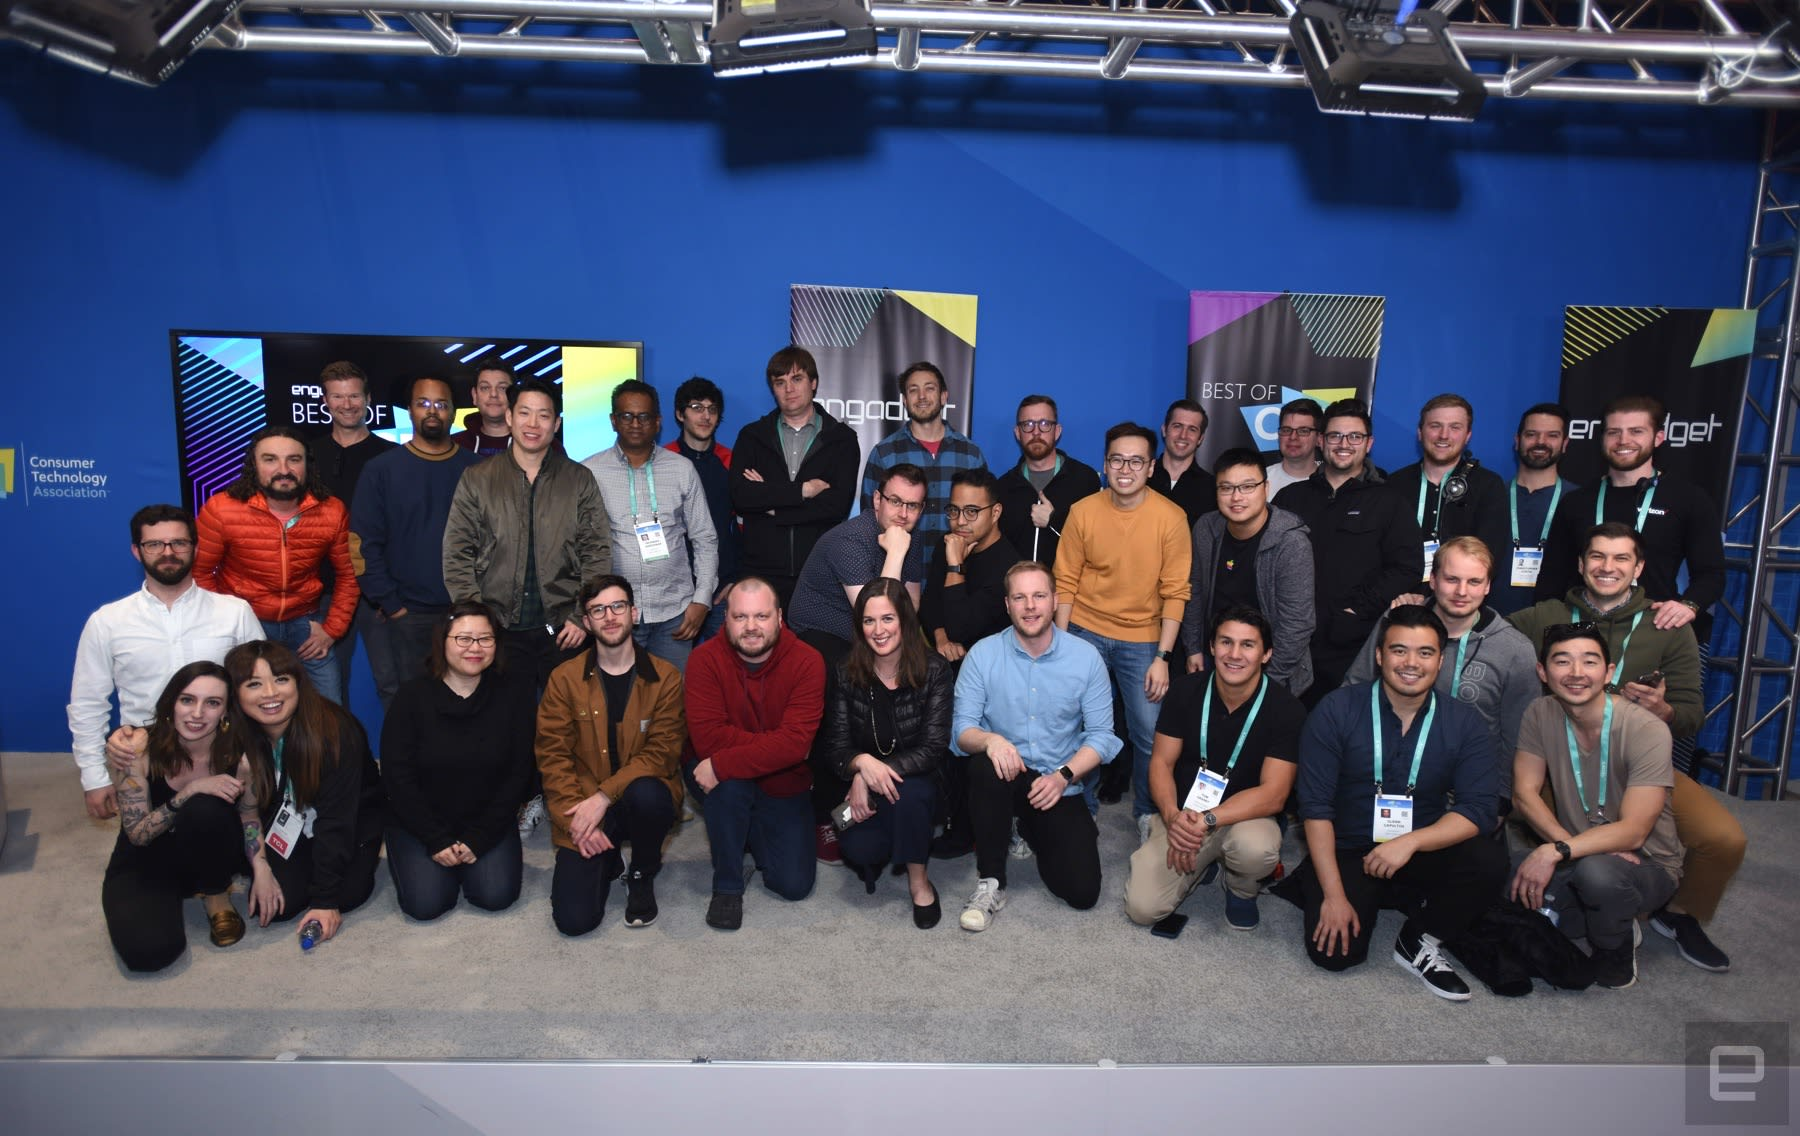 Engadget Team